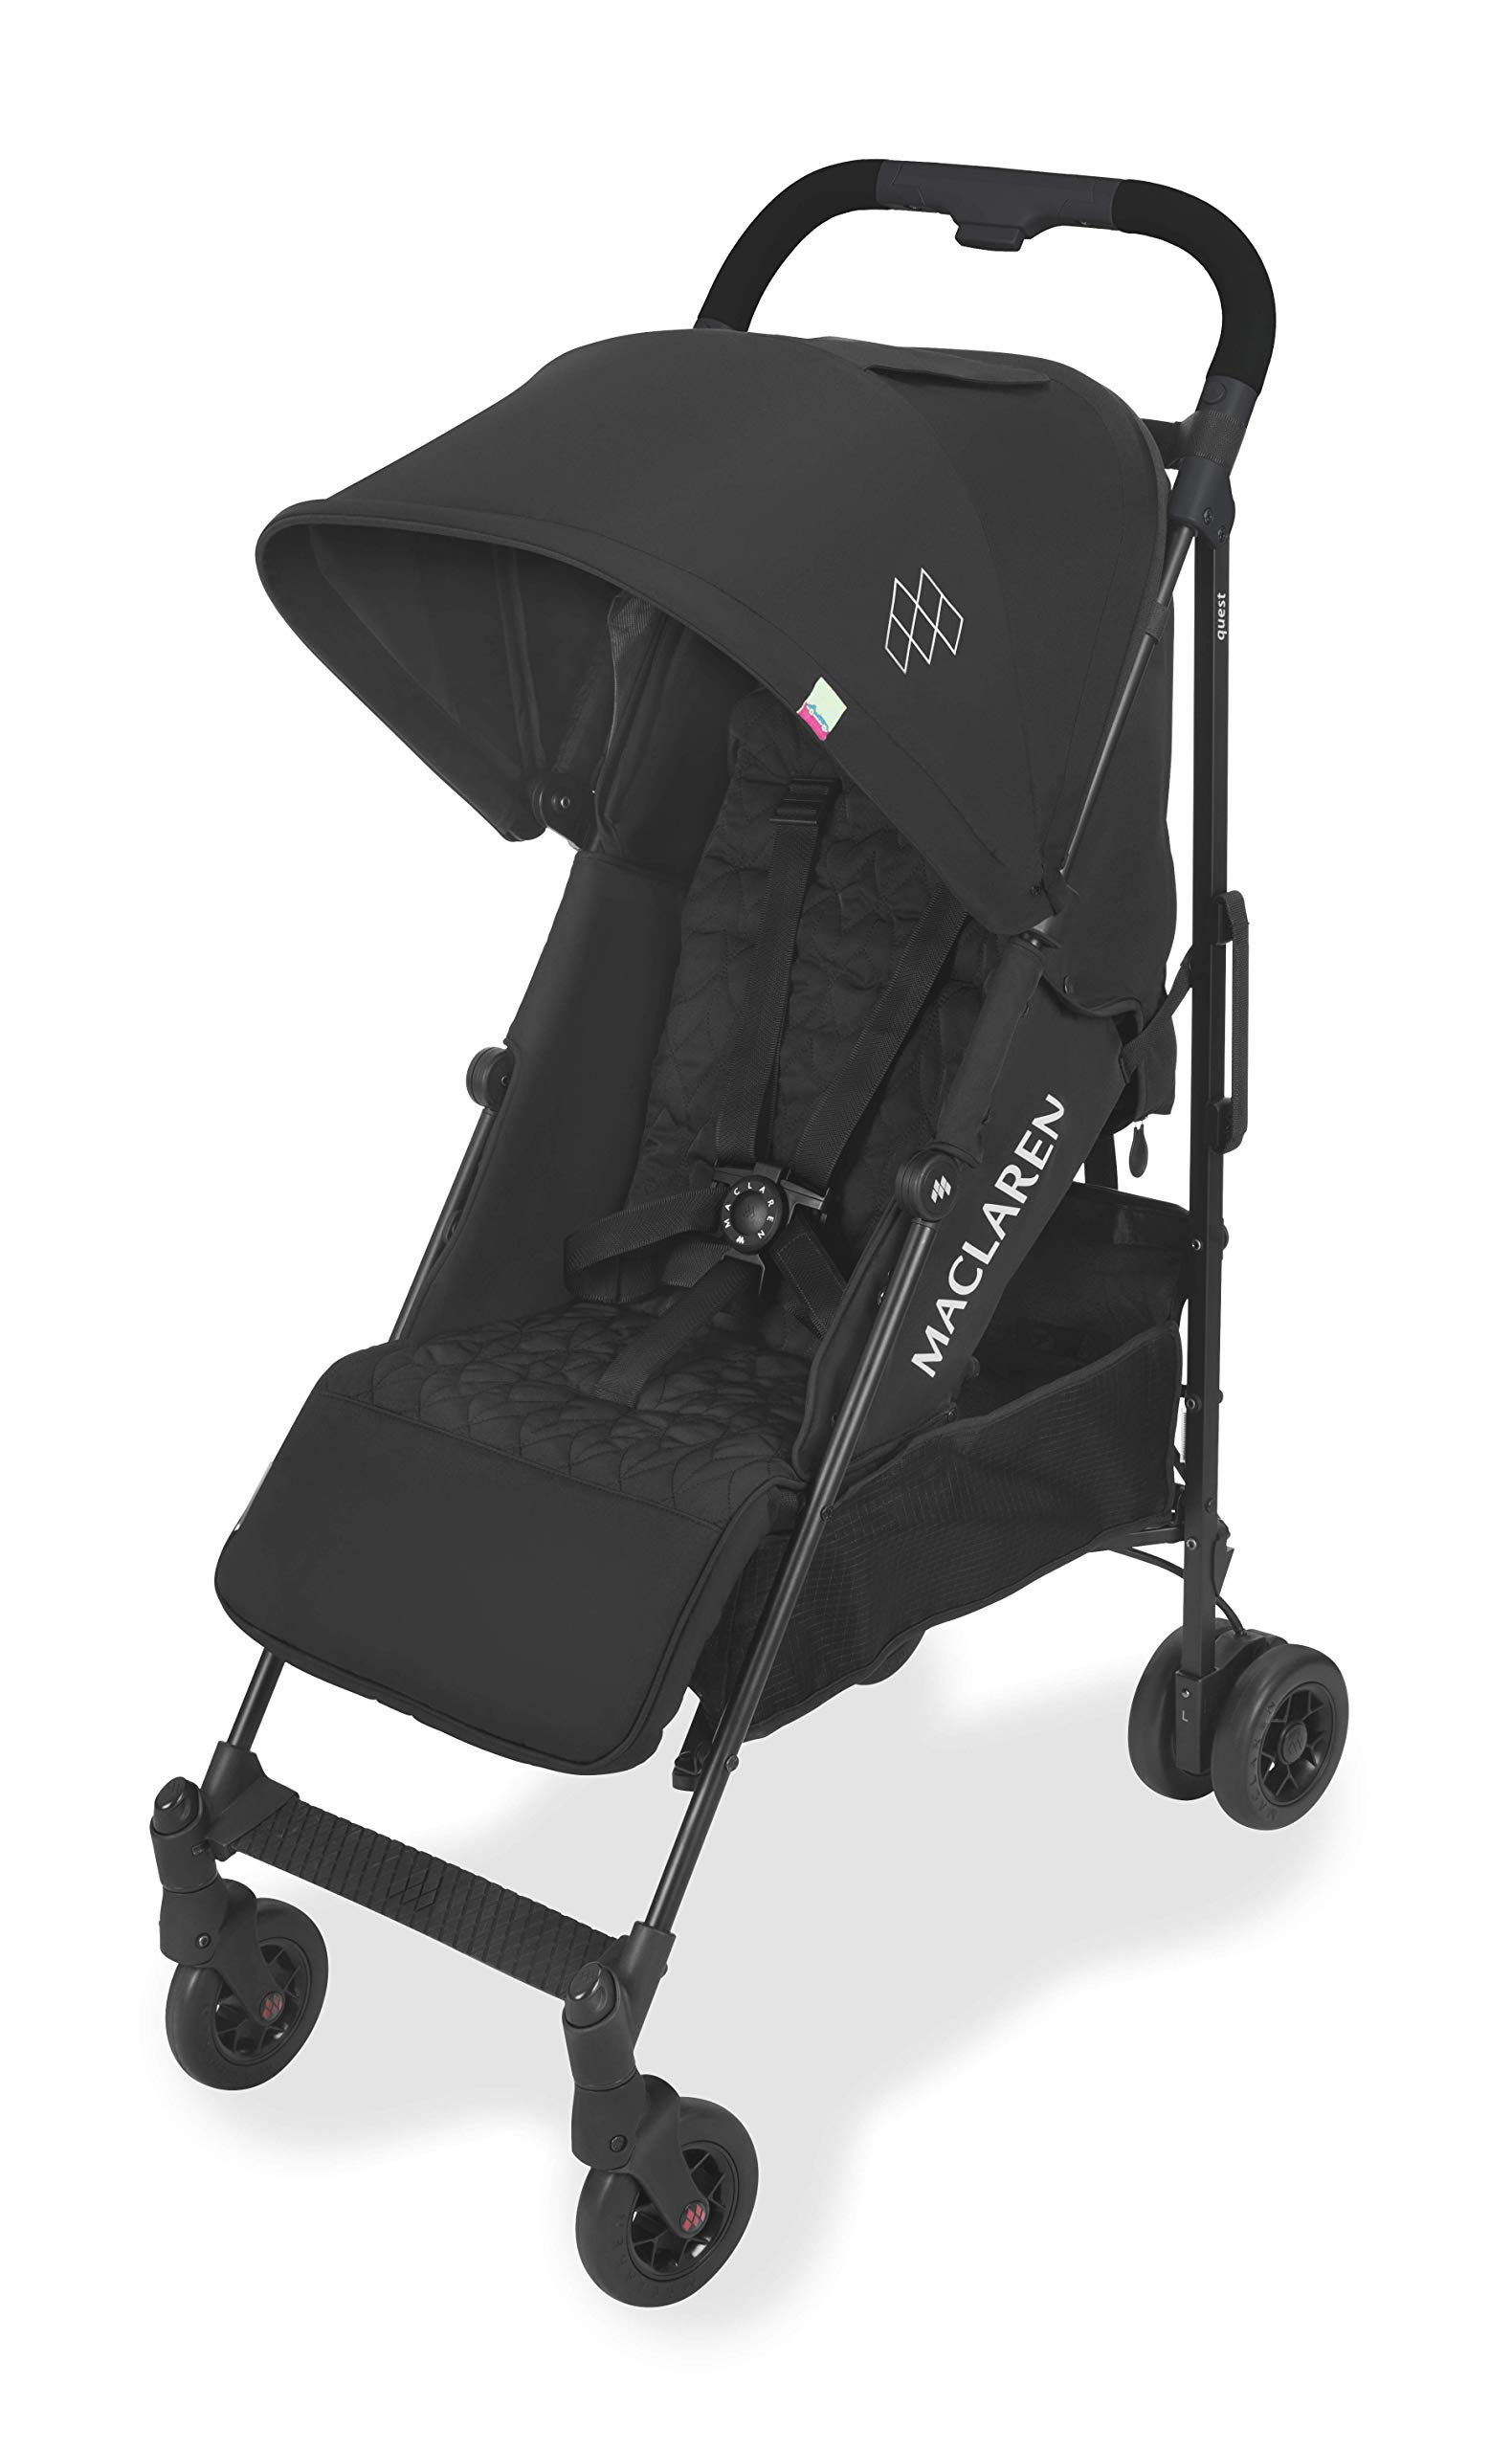 Maclaren Quest Arc Stroller- Ideal for Newborns up to 25kg with extendable UPF 50+/Waterproof Hood, Multi-Position seat and 4-Wheel Suspension. Maclaren Carrycot Compatible. Accessories in The Box Maclaren Lightweight and compact. ideal for newborns and children up to 25kg. you can do it all with one-hand- open, close, push and adjust the seat, footrest and front safety lock Comfy and perfect for travel. the quest arc's padded seat reclines into 4 positions and converts into a new-born safety system. coupled with ultra light flat-free eva tires and all wheel suspension Smart product for active parents. compatible with the maclaren carrycot. all maclaren strollers have waterproof/ upf 50+ hoods to protect from the elements and machine washable seats to keep tidy 1